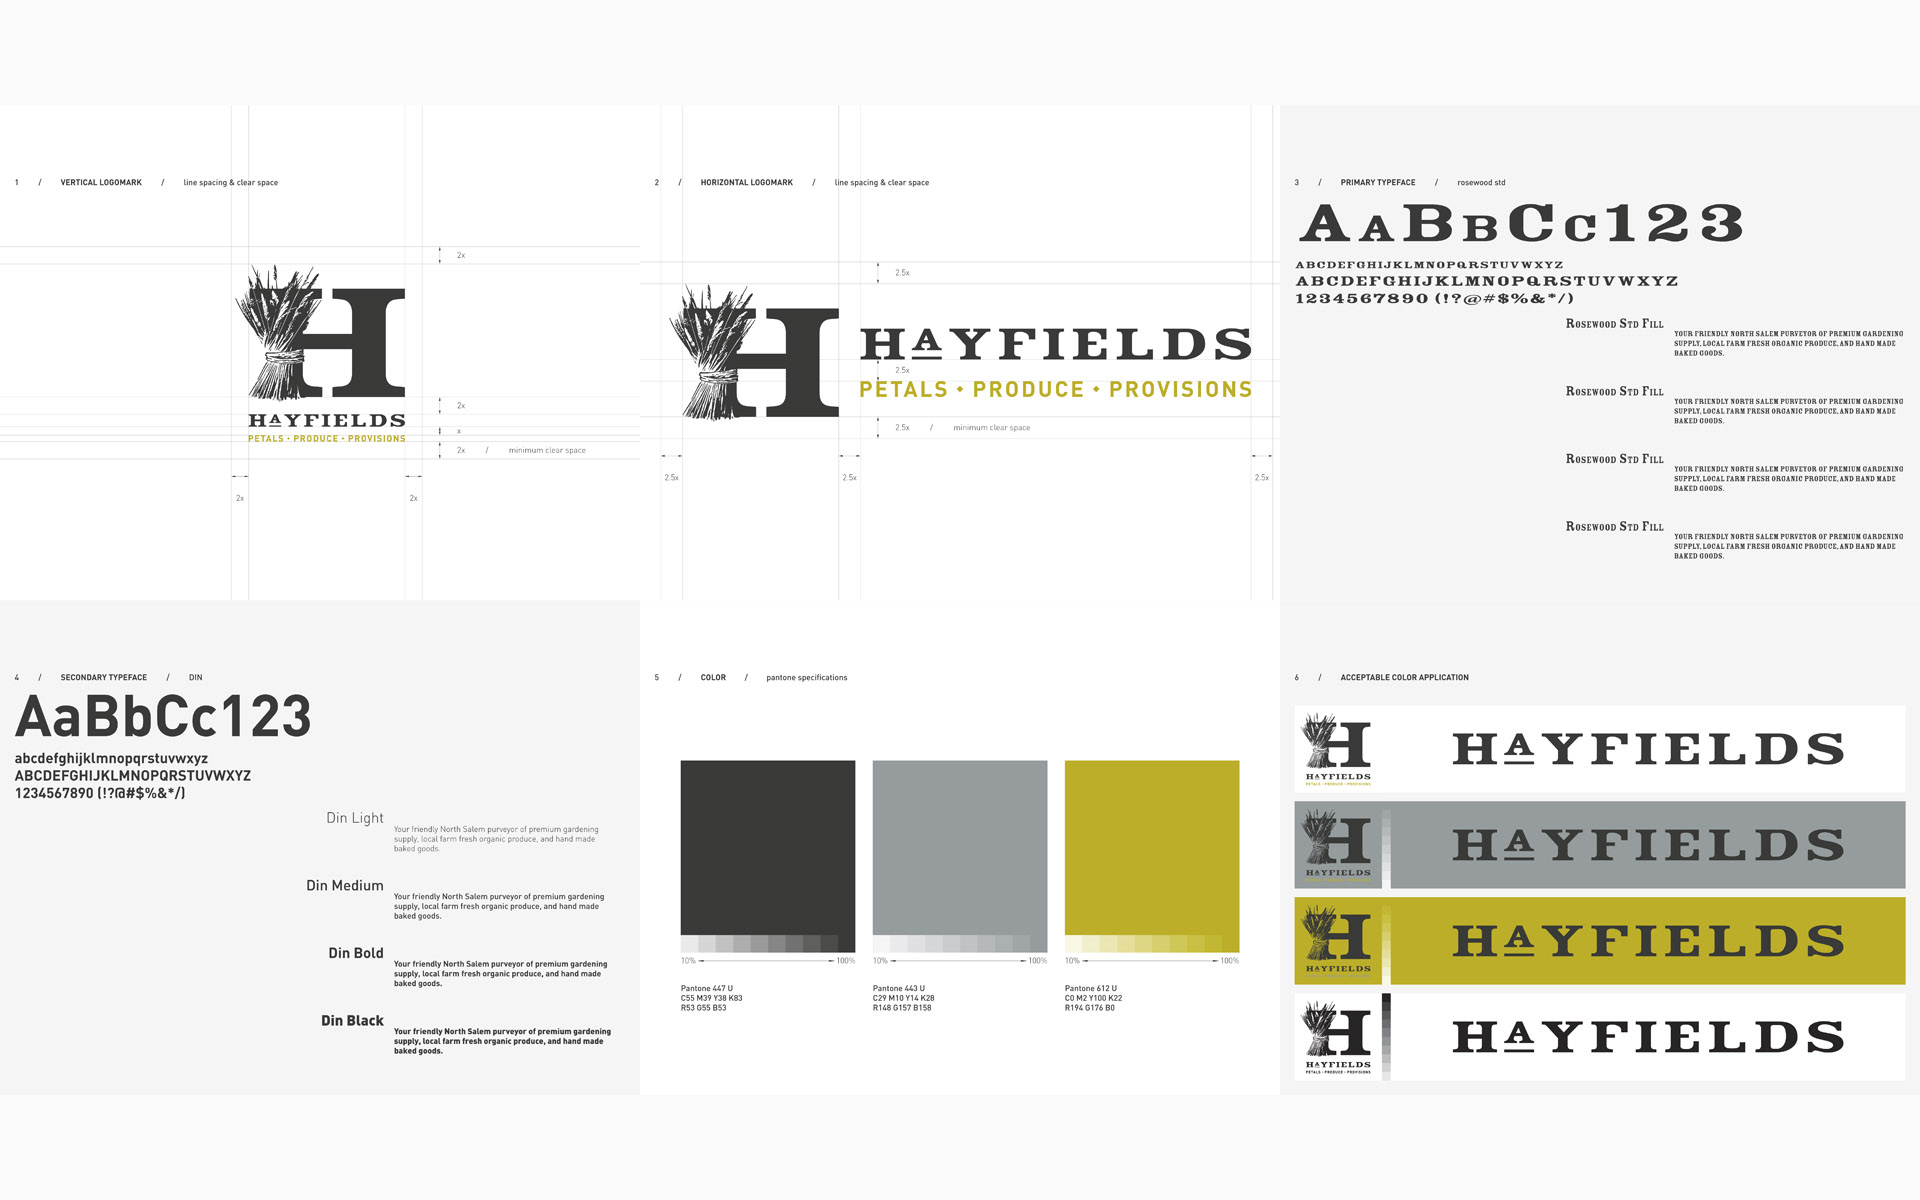 Hayfields Brand Identity Style Guidelines